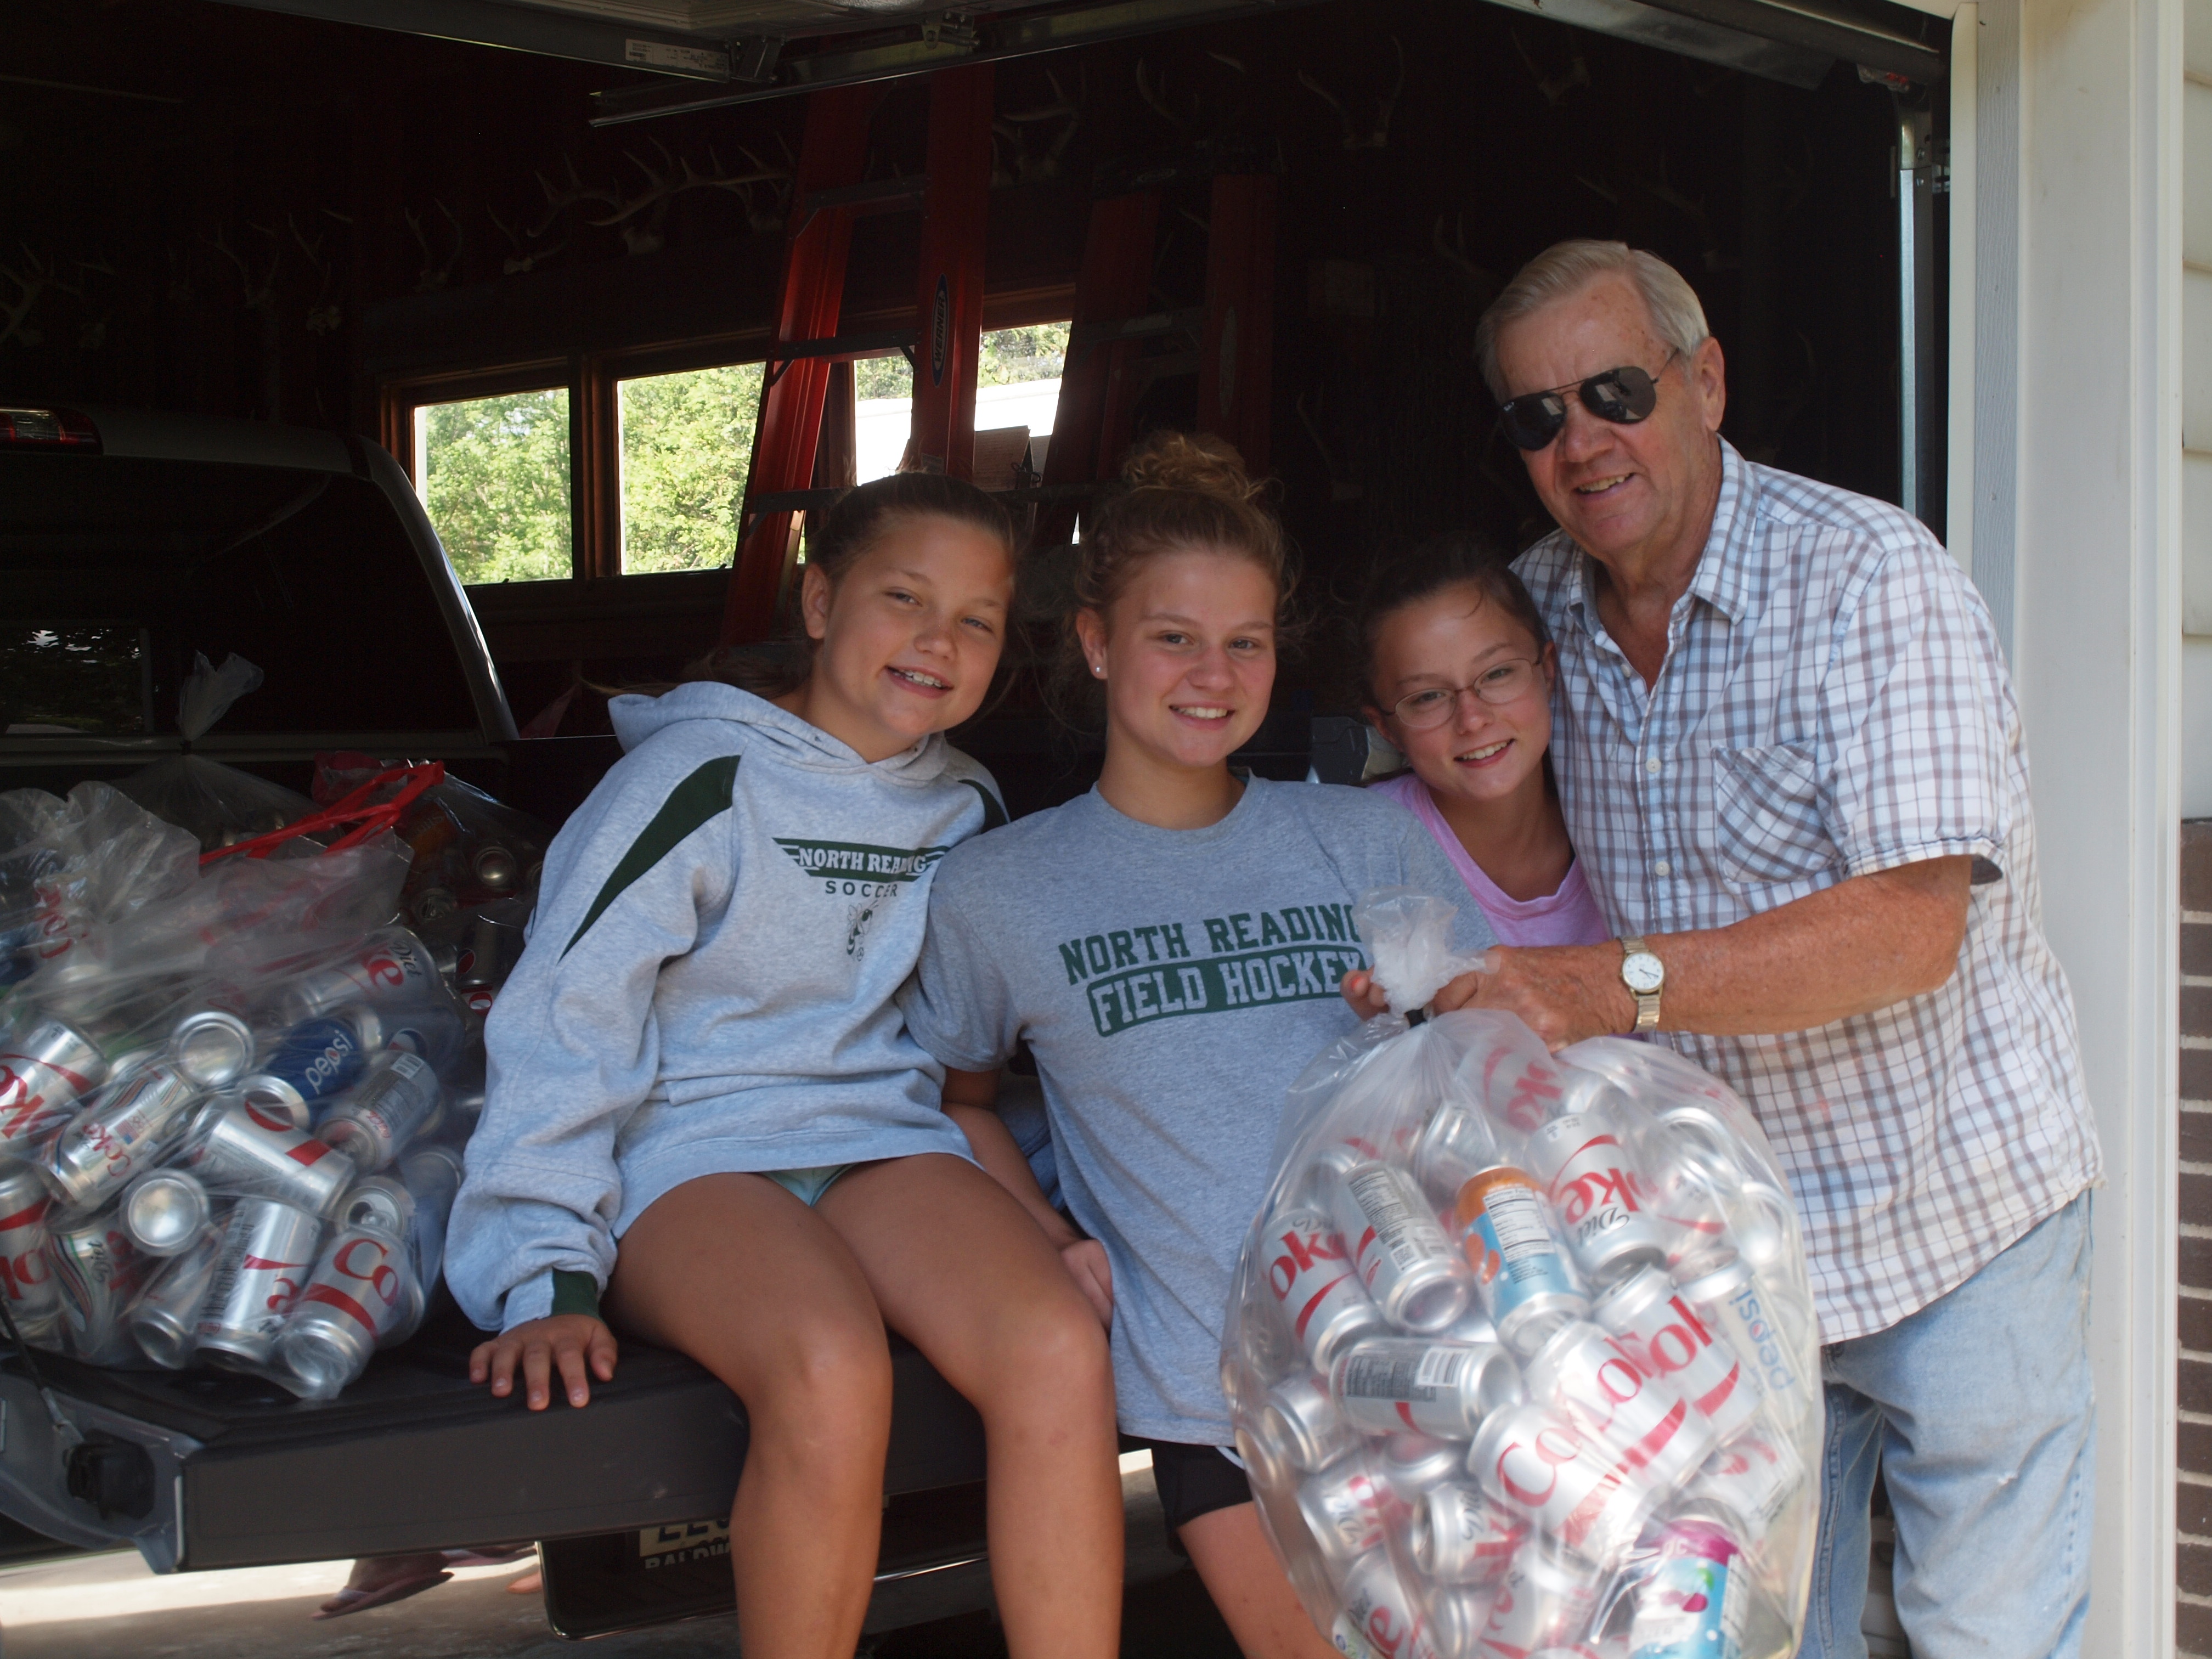 2017 - Collecting Cans with Poppy